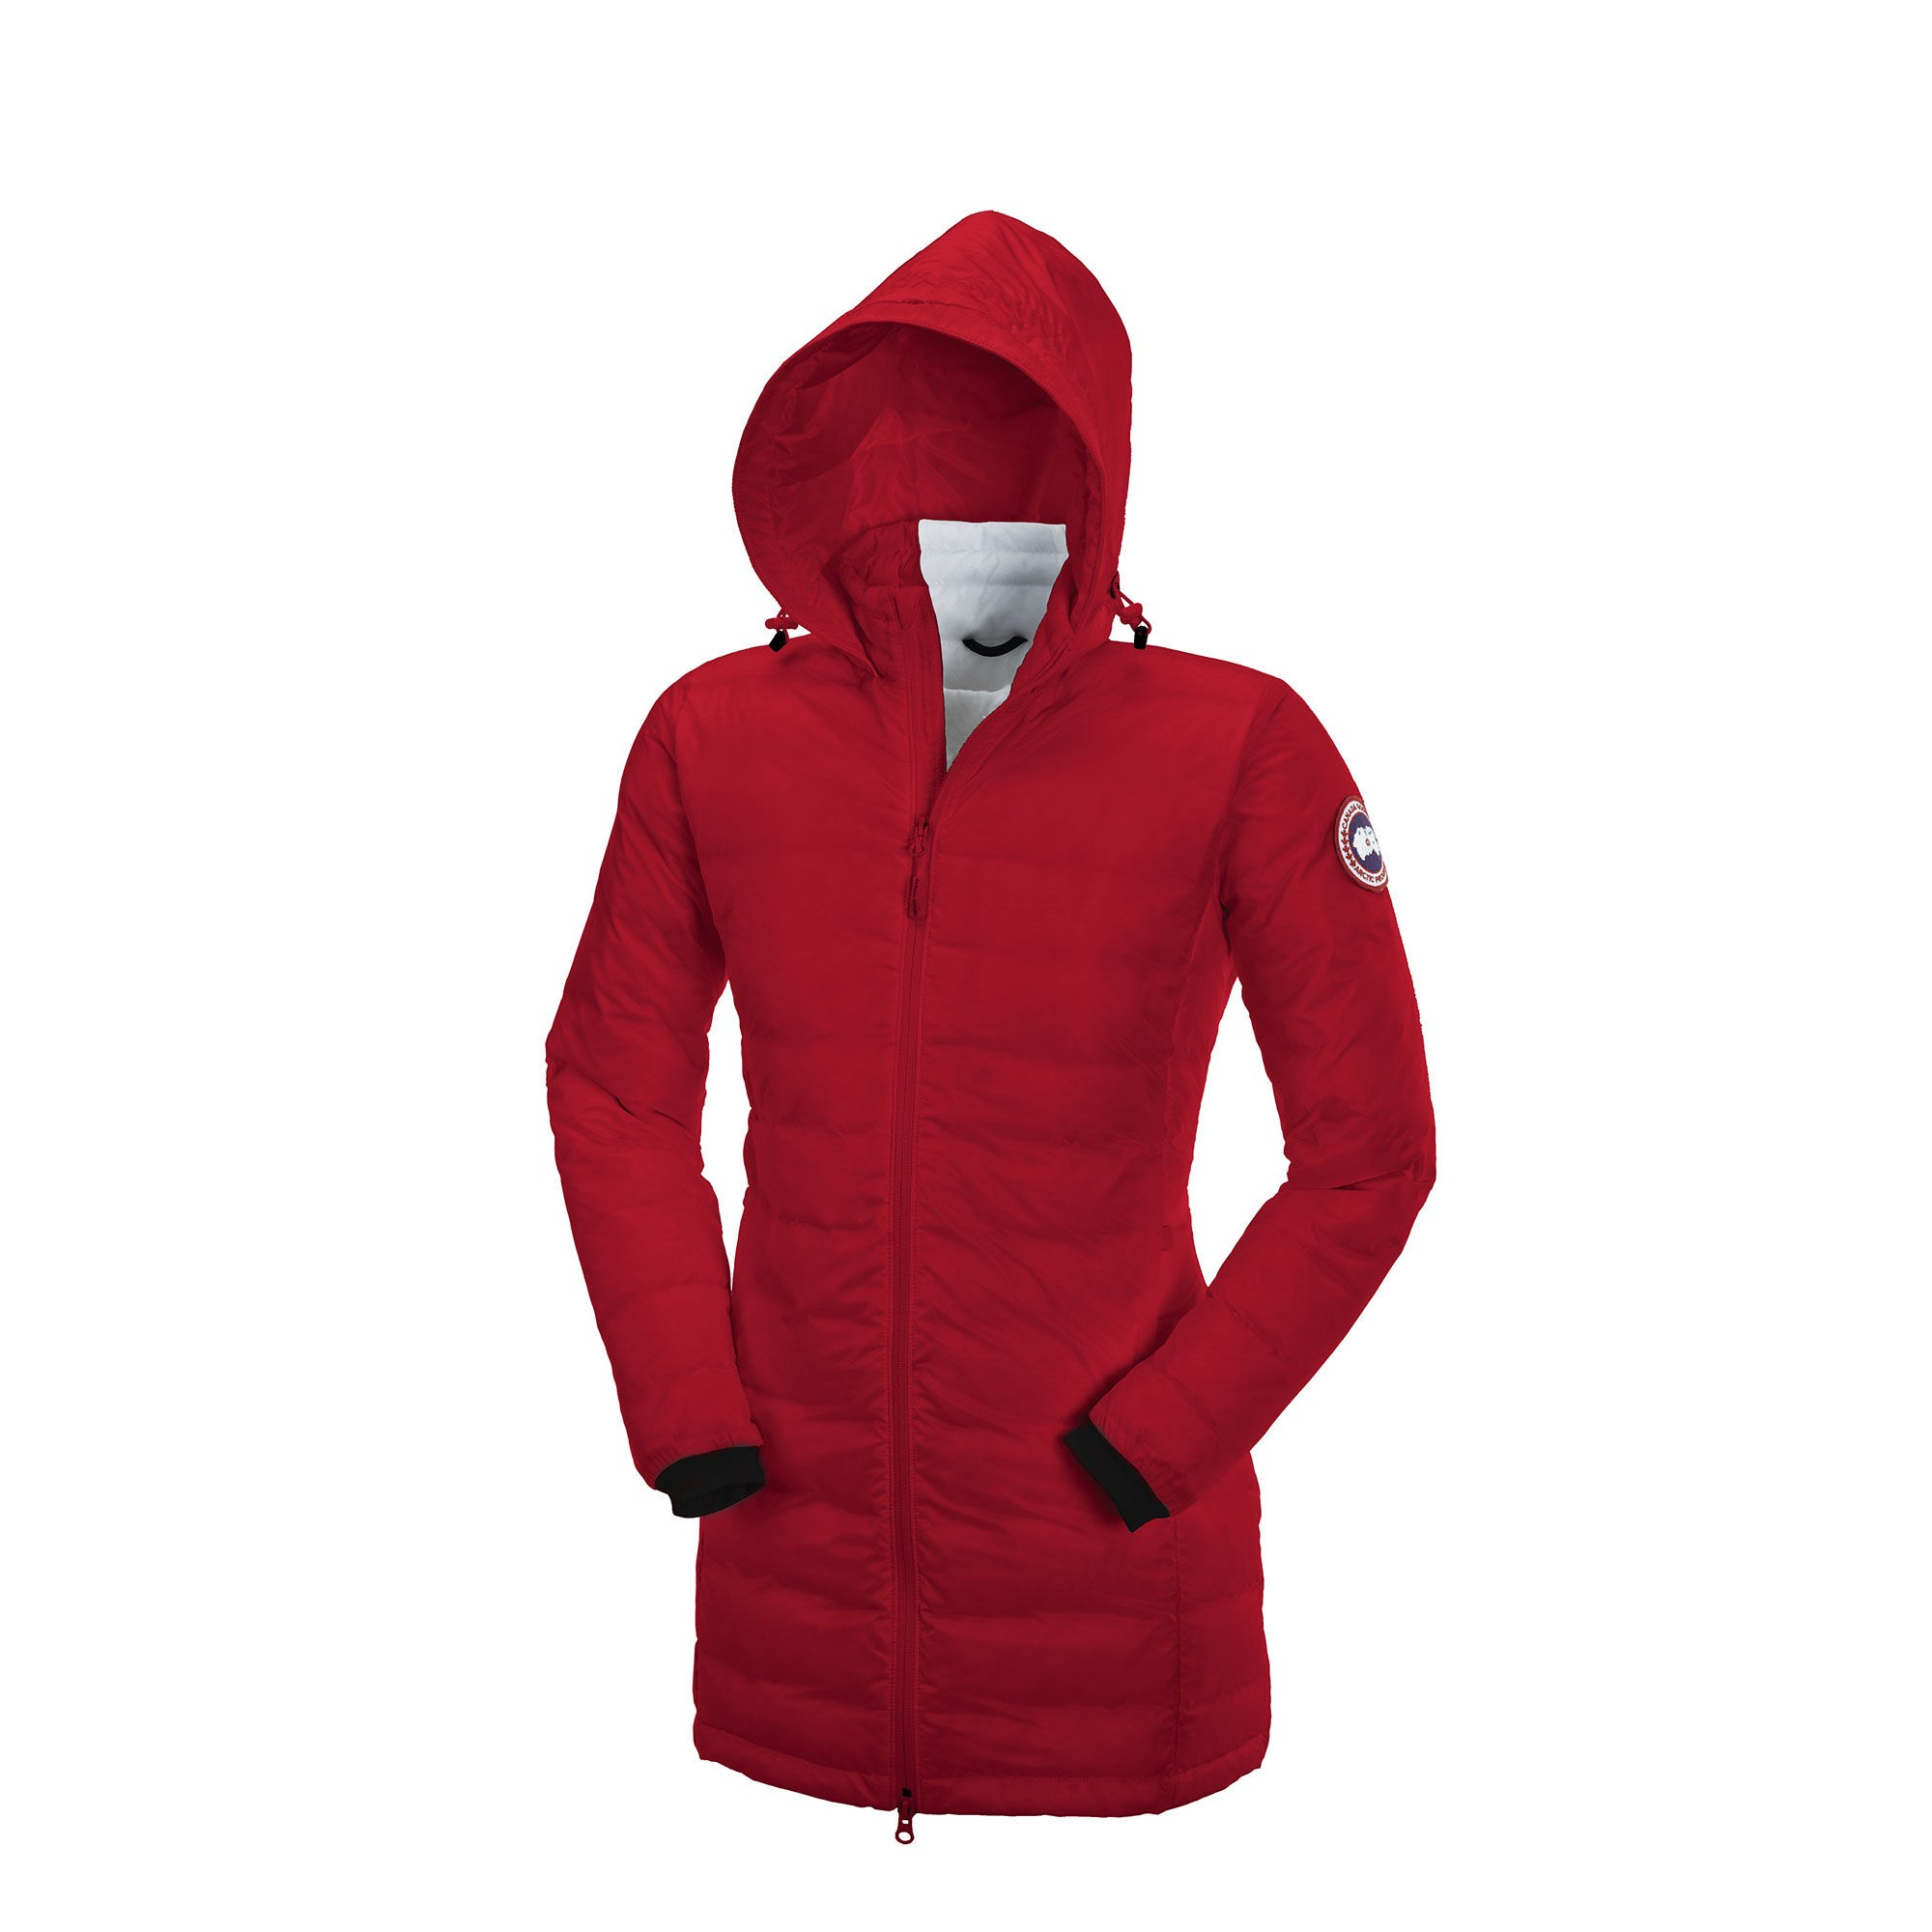 CANADA GOOSE CAMP HOODED JACKET Red Womens 5061L 2d91fec058